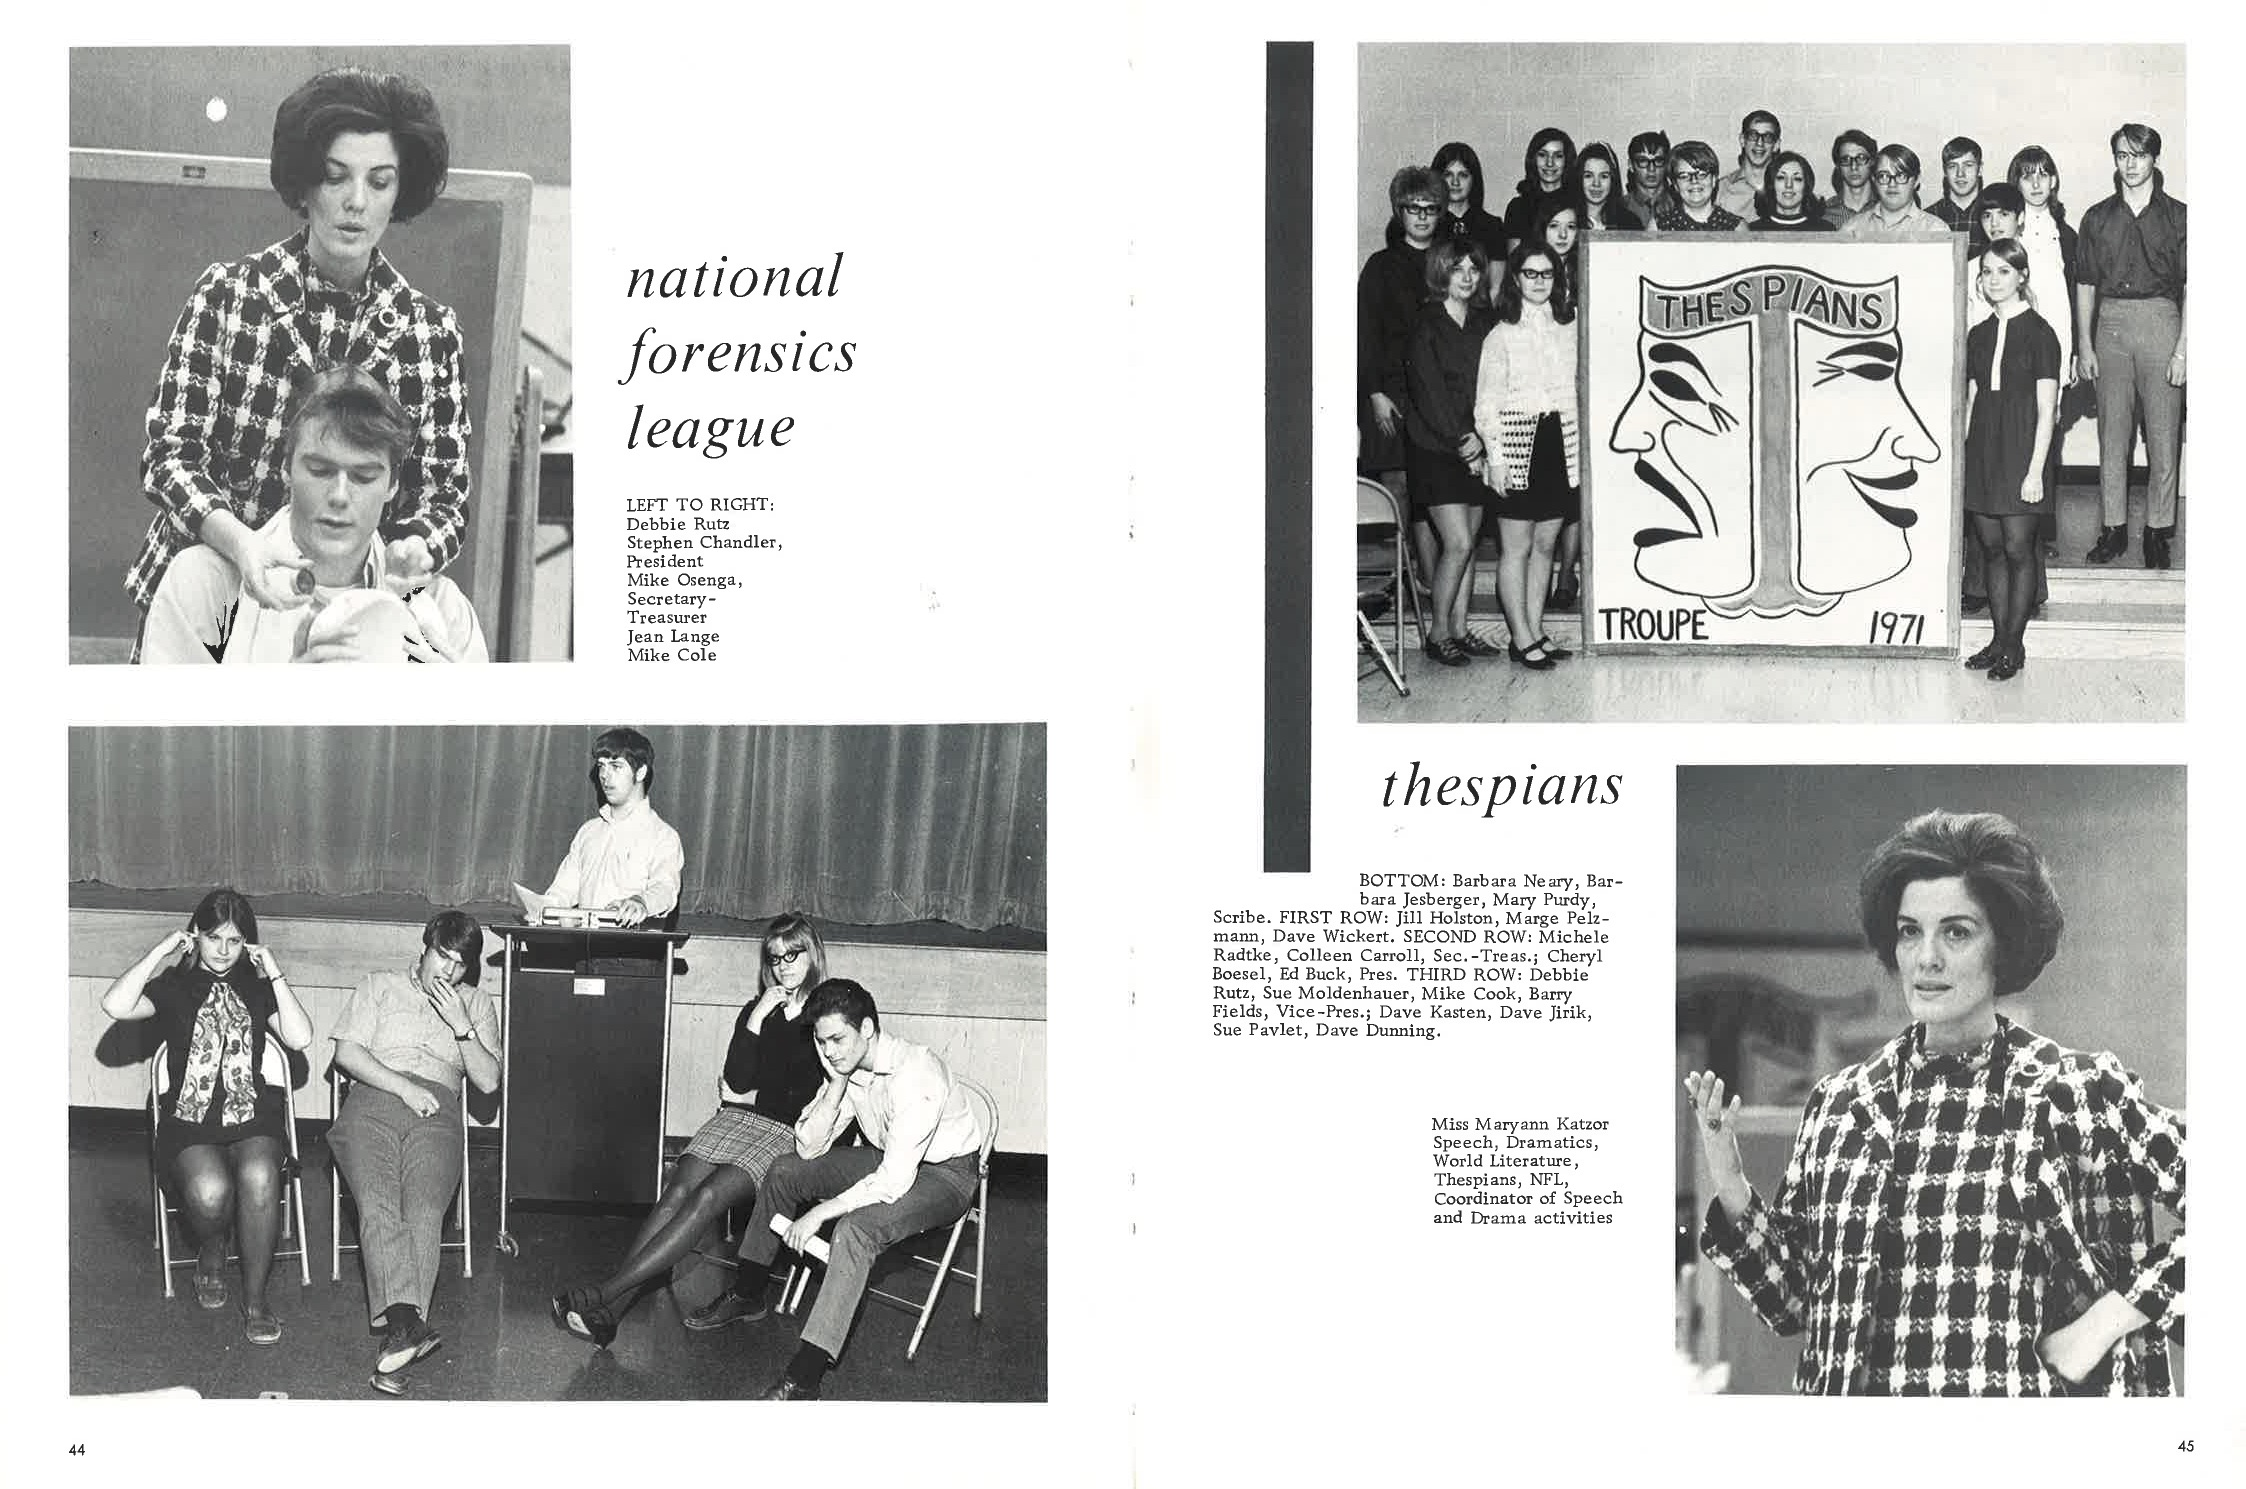 1970_Yearbook_44-45.jpg